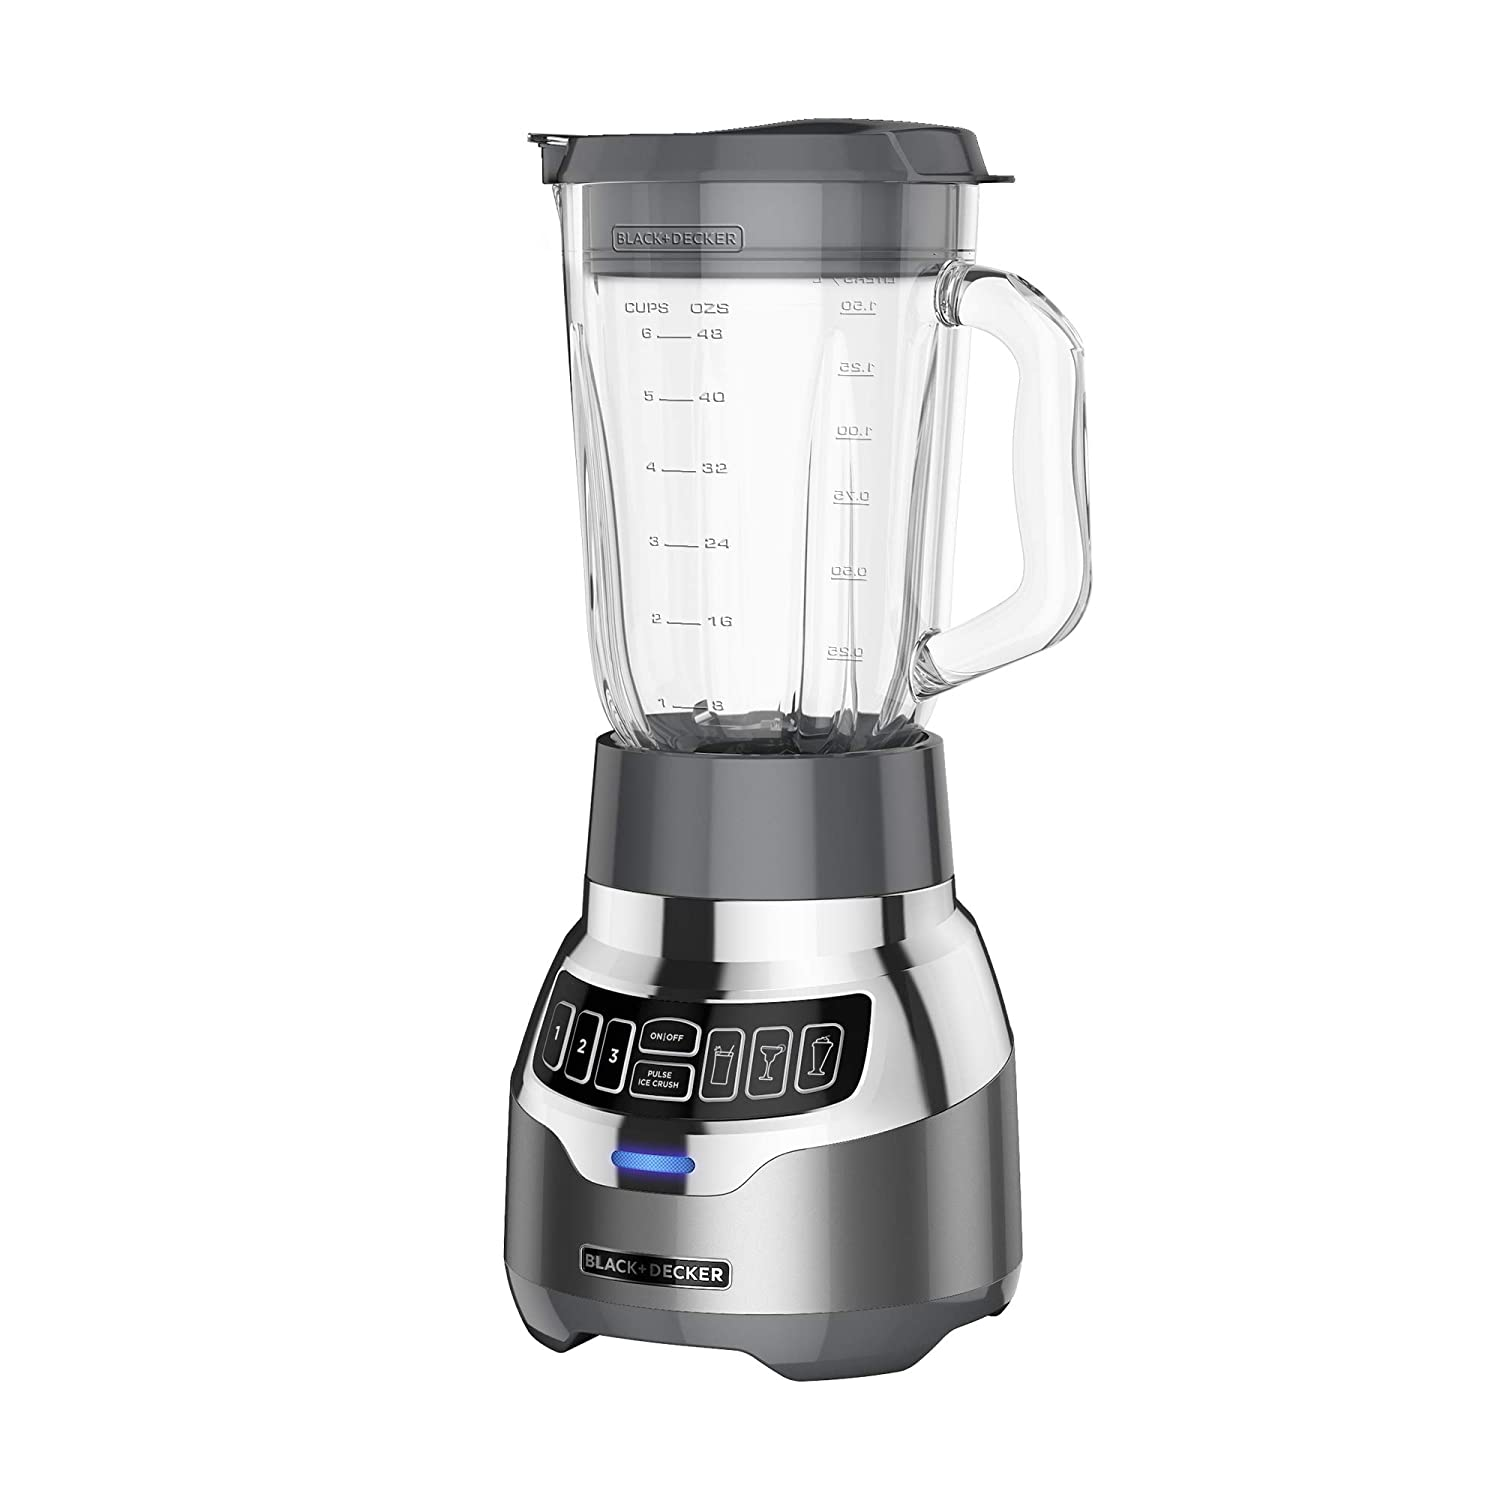 BLACK+DECKER PowerCrush Digital Quiet Blender, New Quiet Technology, BL1300DG-P